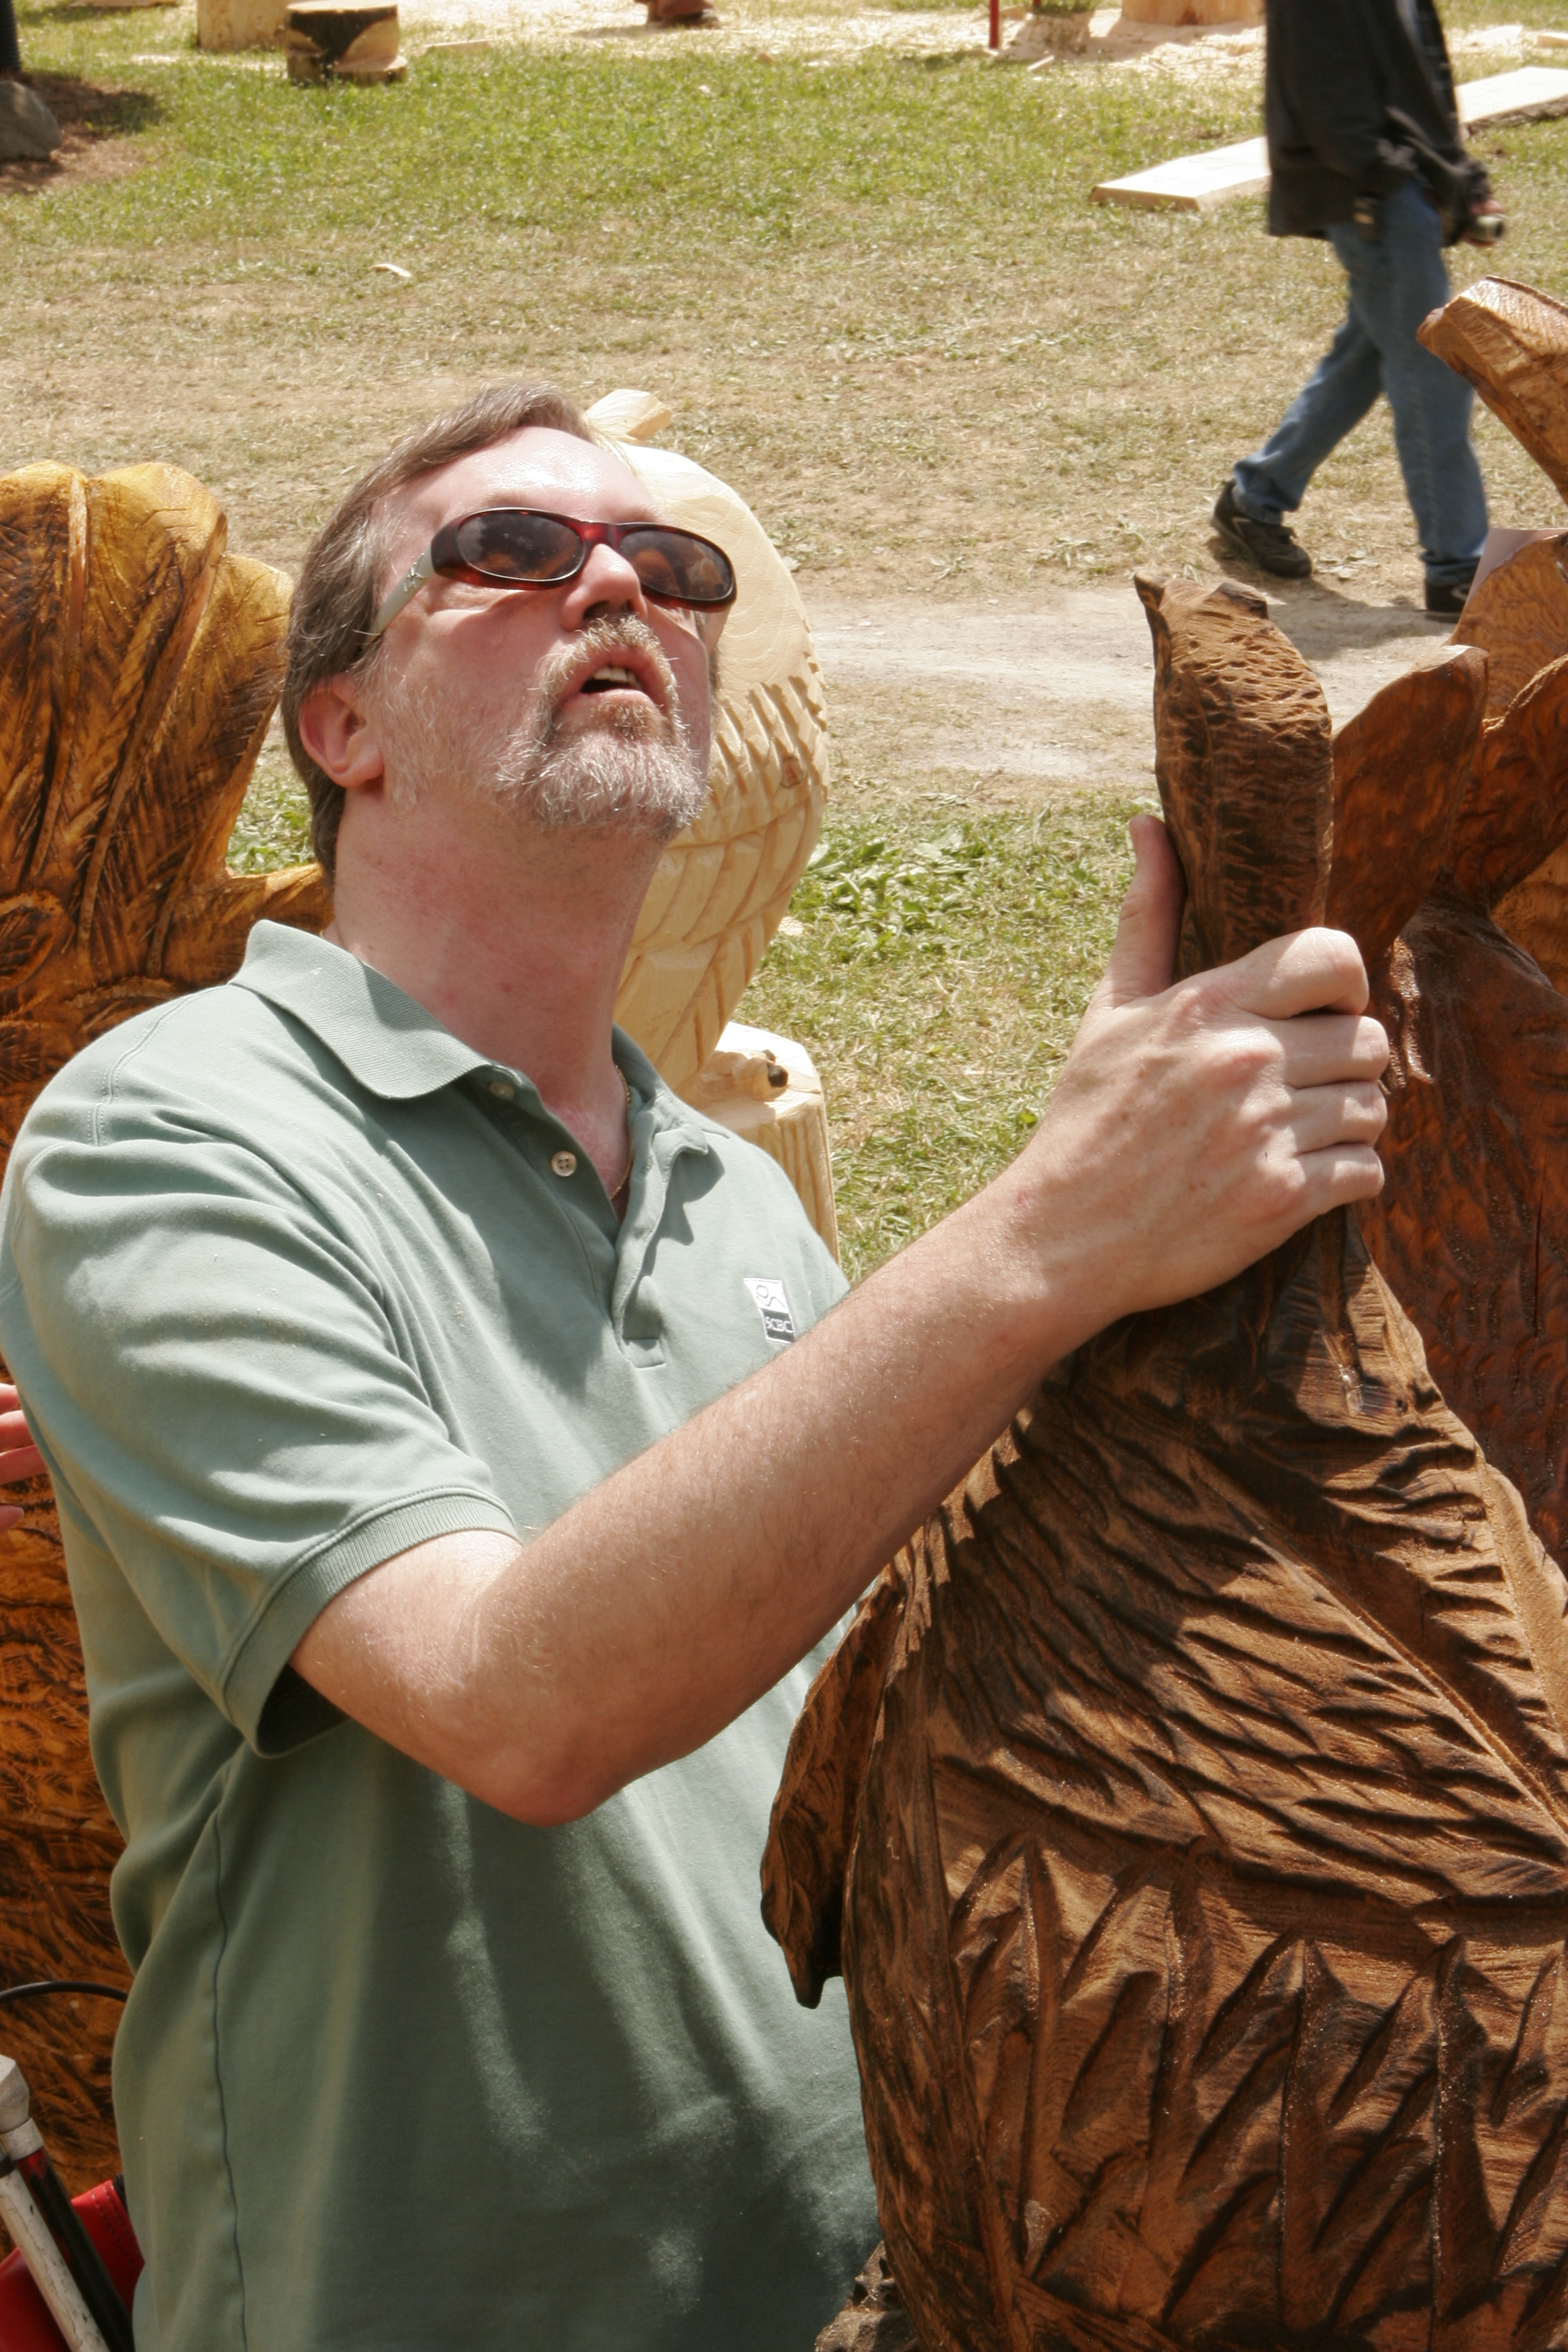 A chainsaw carving festival to benefit the blind